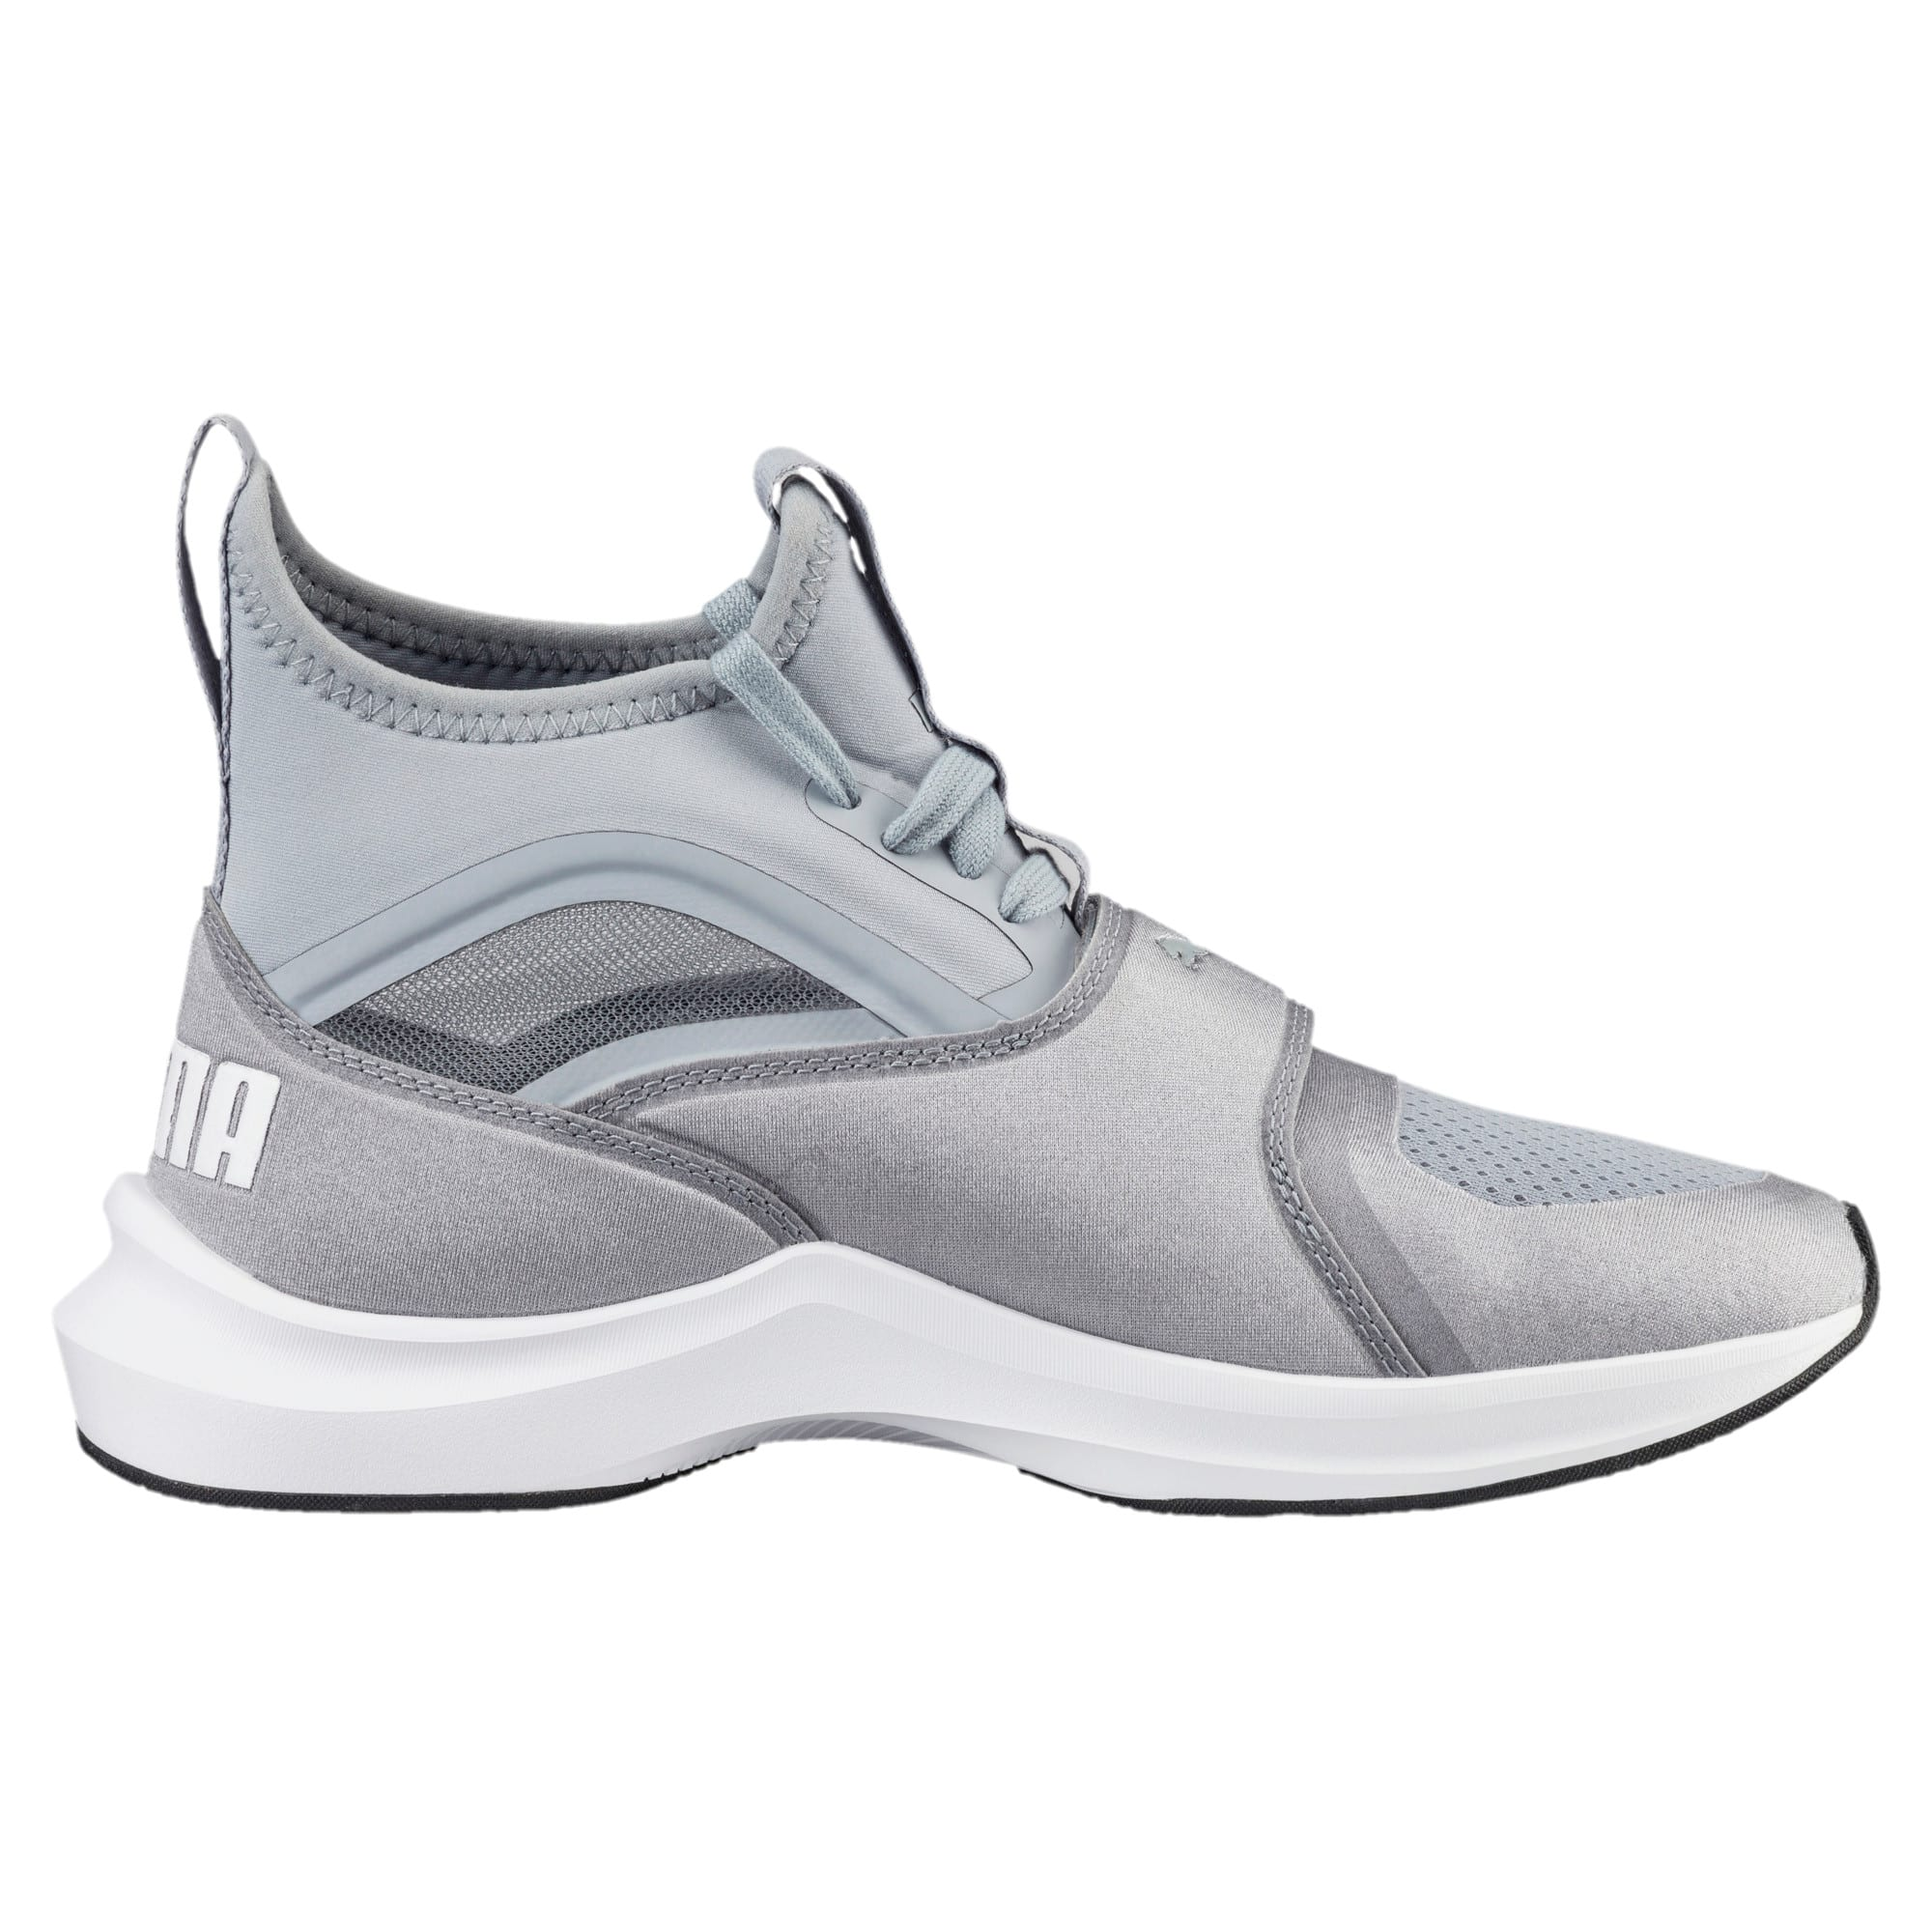 Thumbnail 3 of Phenom Women's Training Shoes, Quarry-Puma White, medium